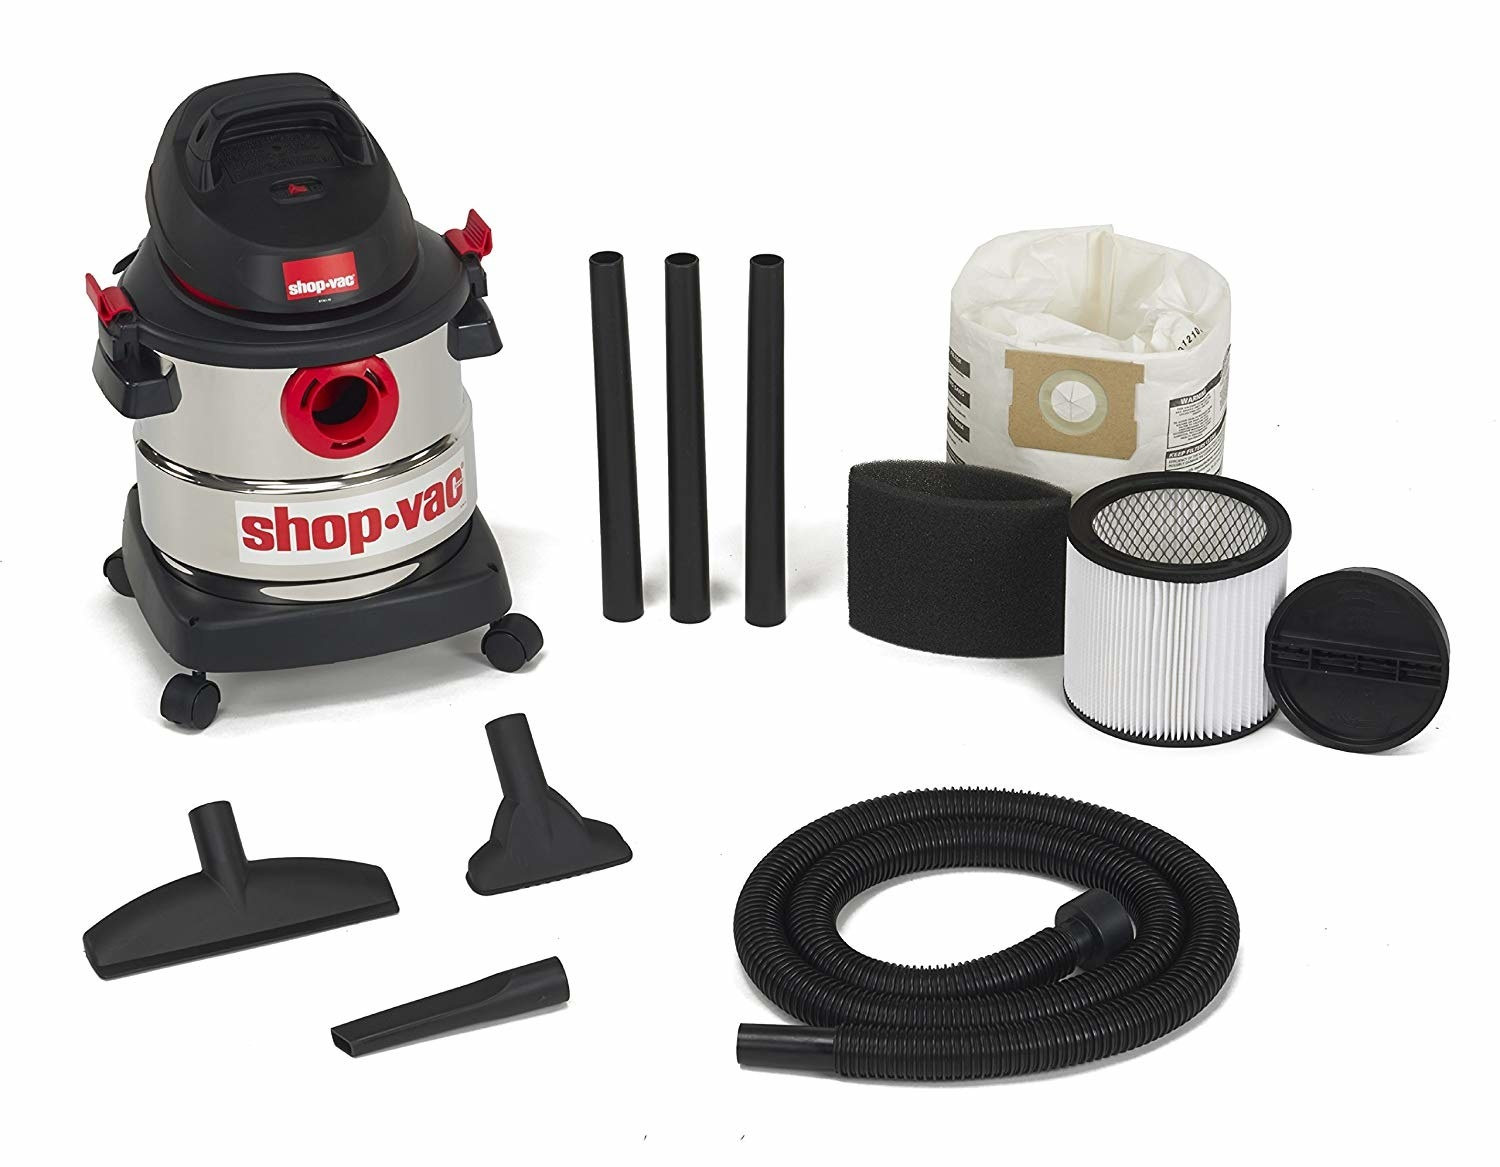 the stainless steel vac with filter, hose, and hose attachments